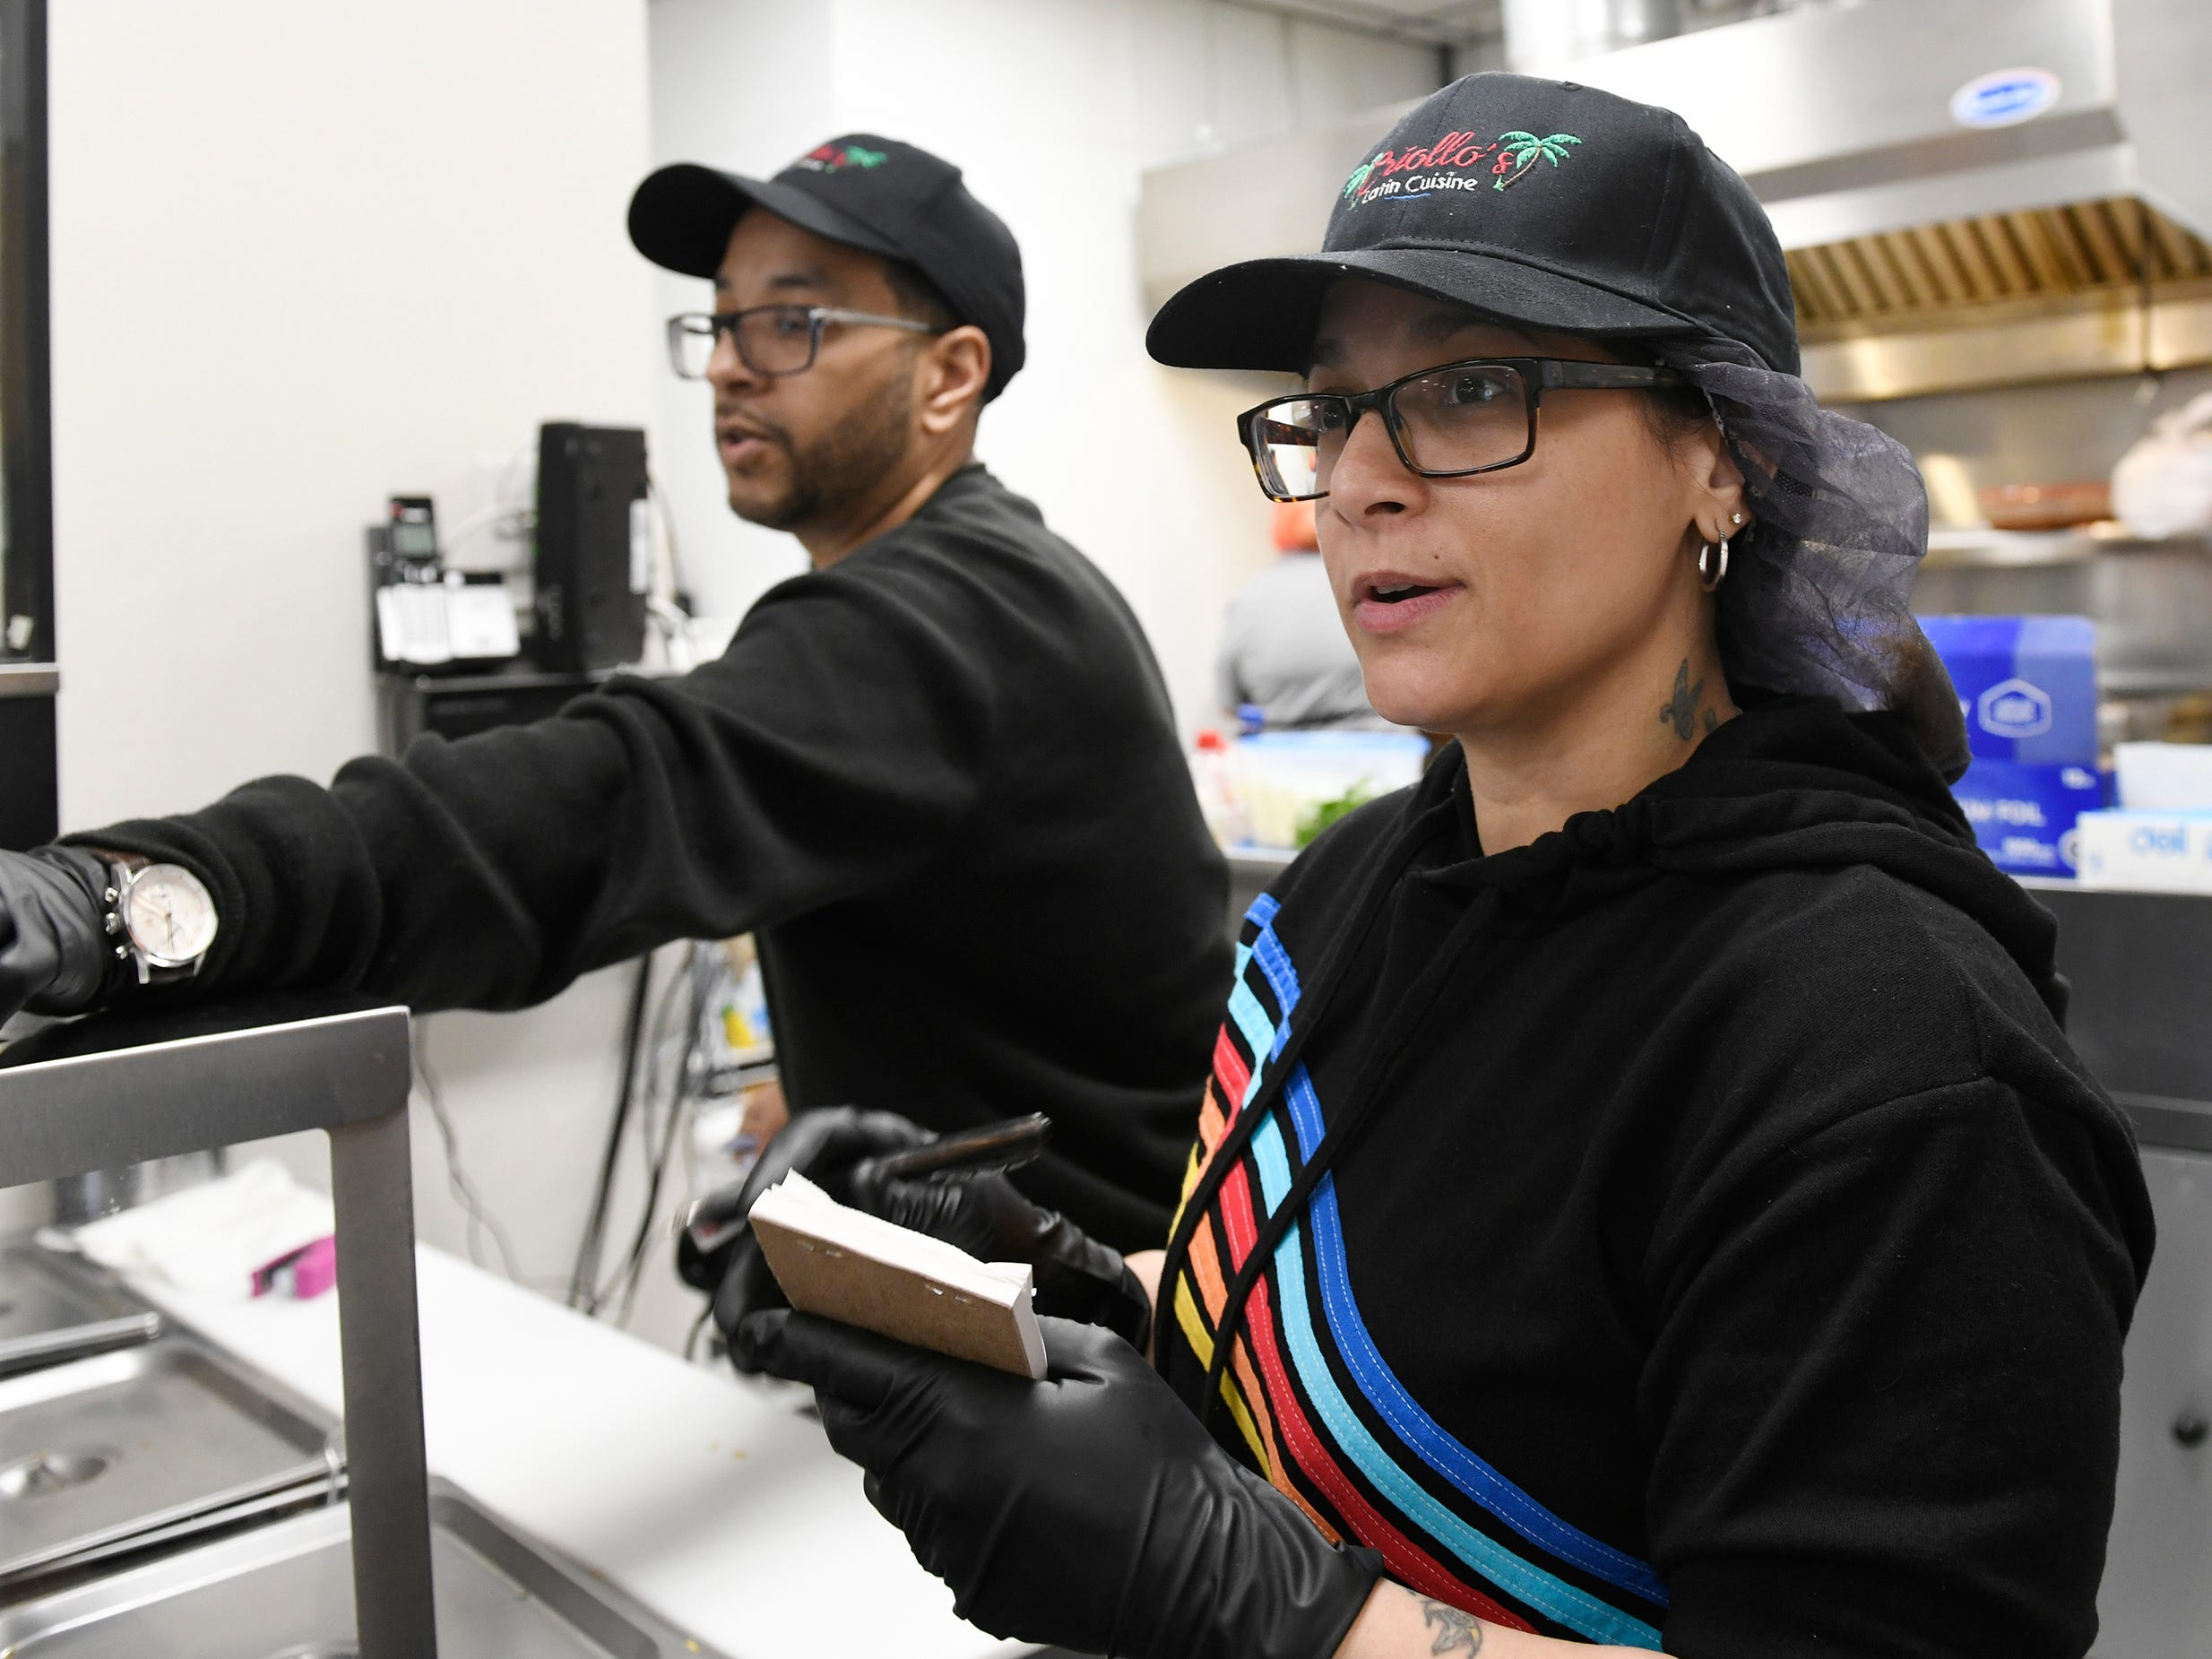 Owners Scott and Elsie Guzman get ready for the lunch rush at Criollo's Latin Cuisine in Millville on Wednesday, March 27, 2019. The restaurant is located inside the EZ-Mart on West Main Street.